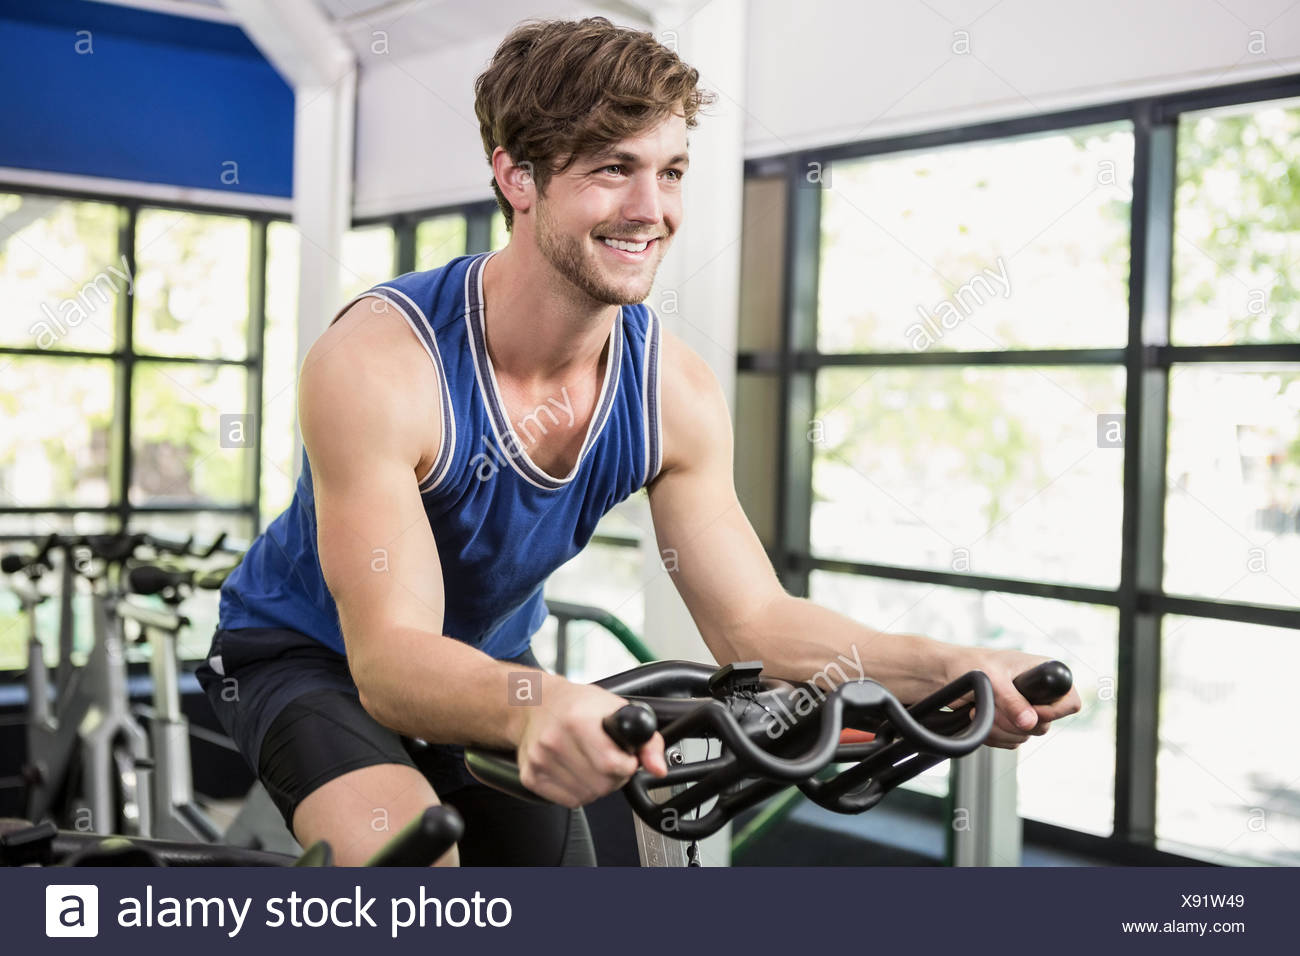 Man working out on exercise bike at spinning class Photo Stock